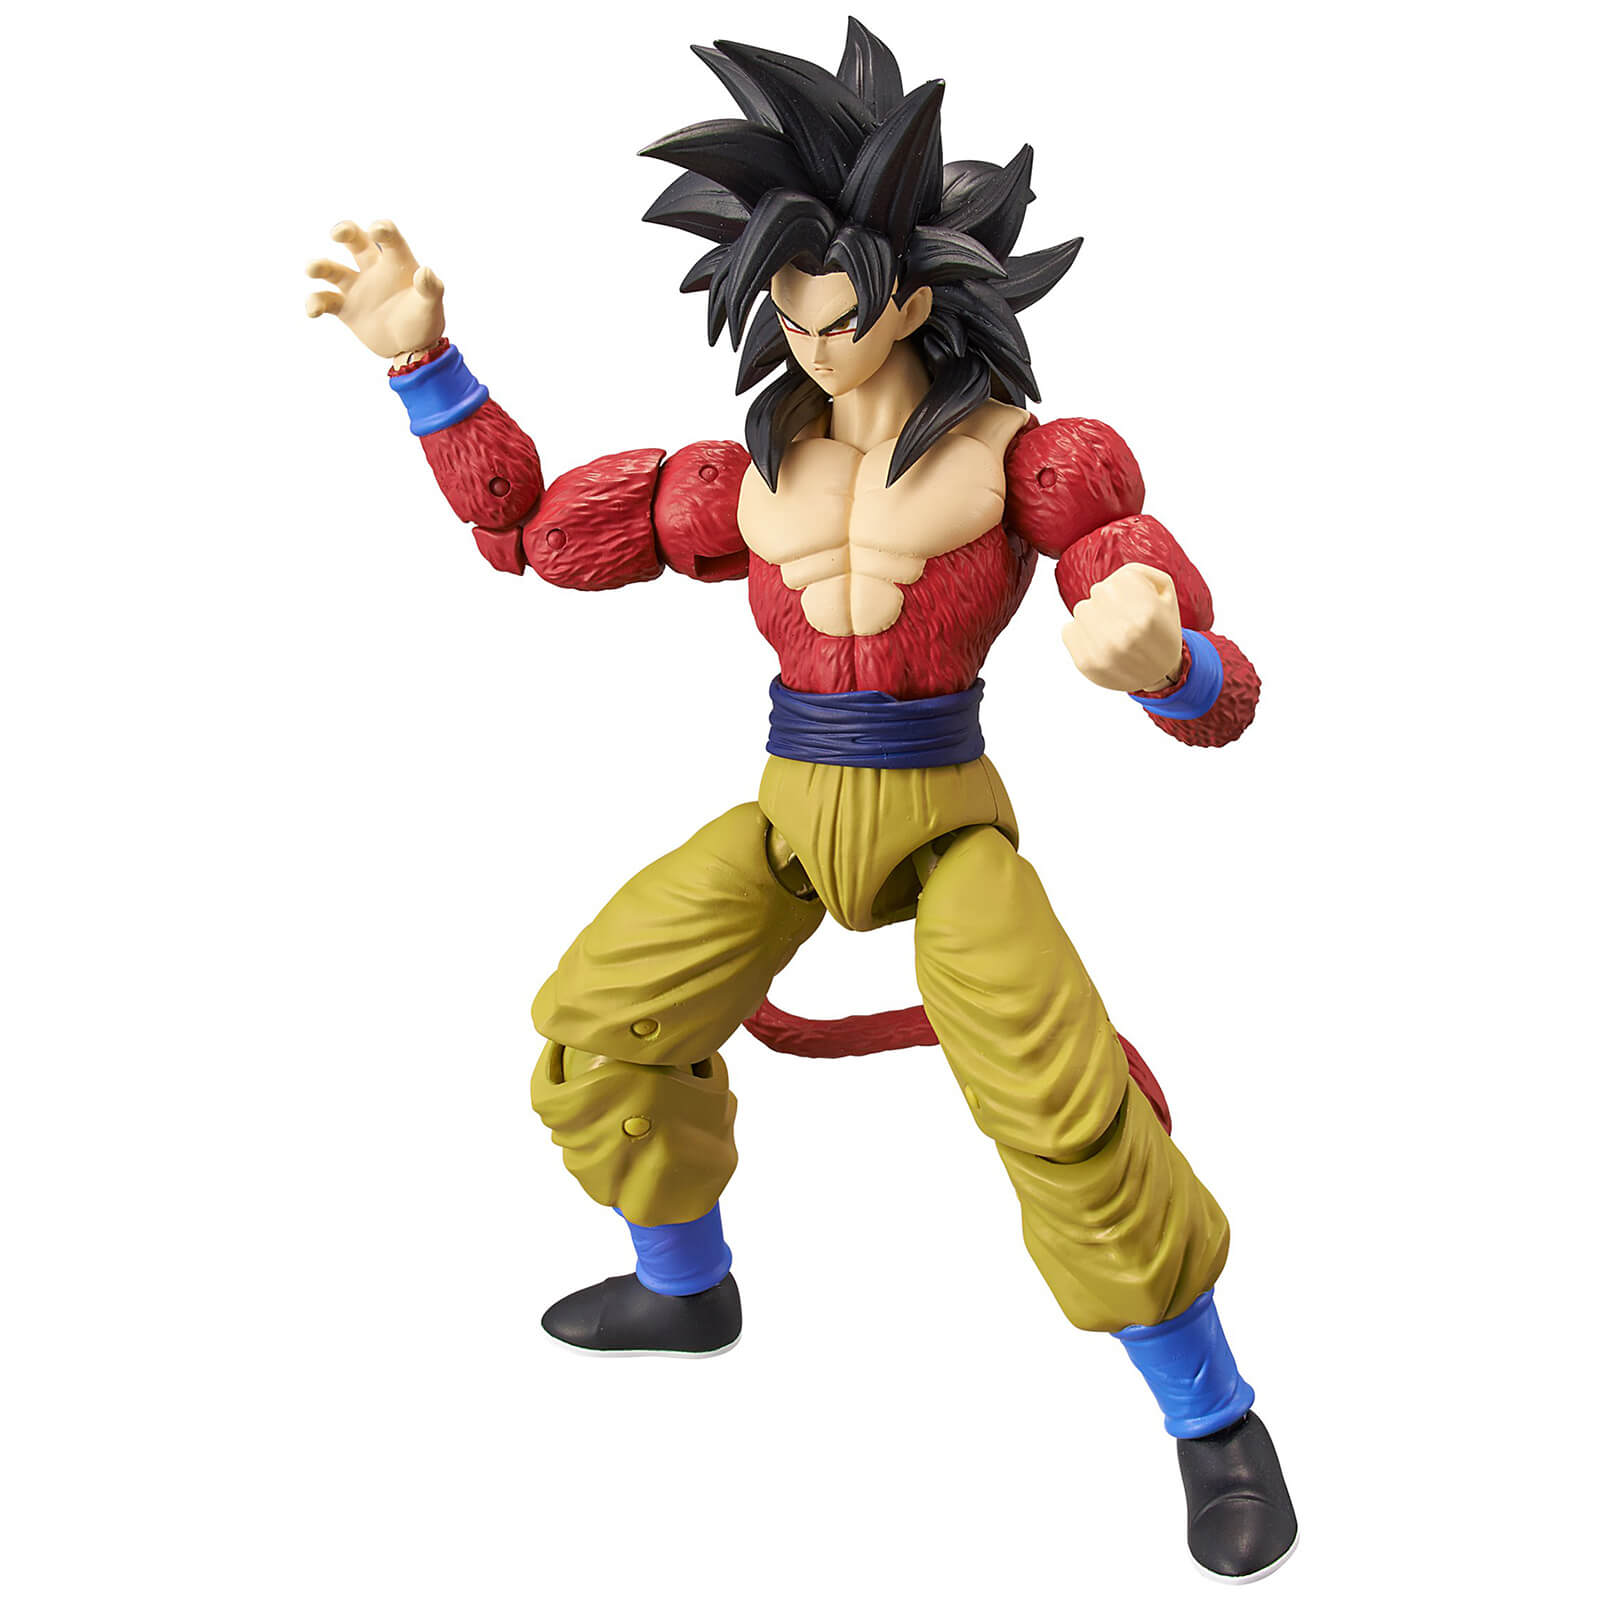 Image of Bandai Dragon Stars DBZ Super Saiyan 4 Goku Action Figure